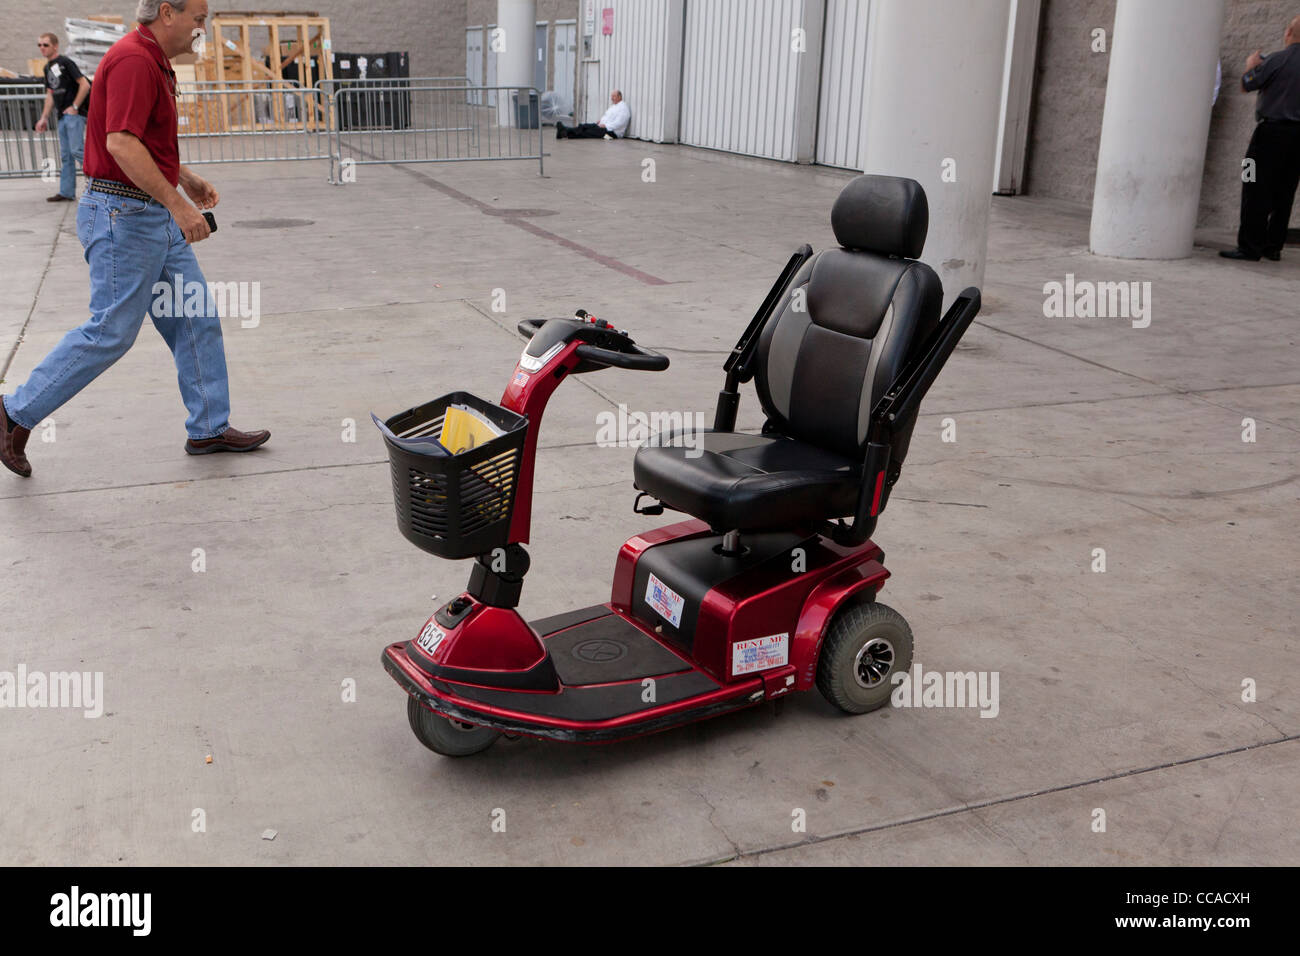 Mobility scooter - Stock Image